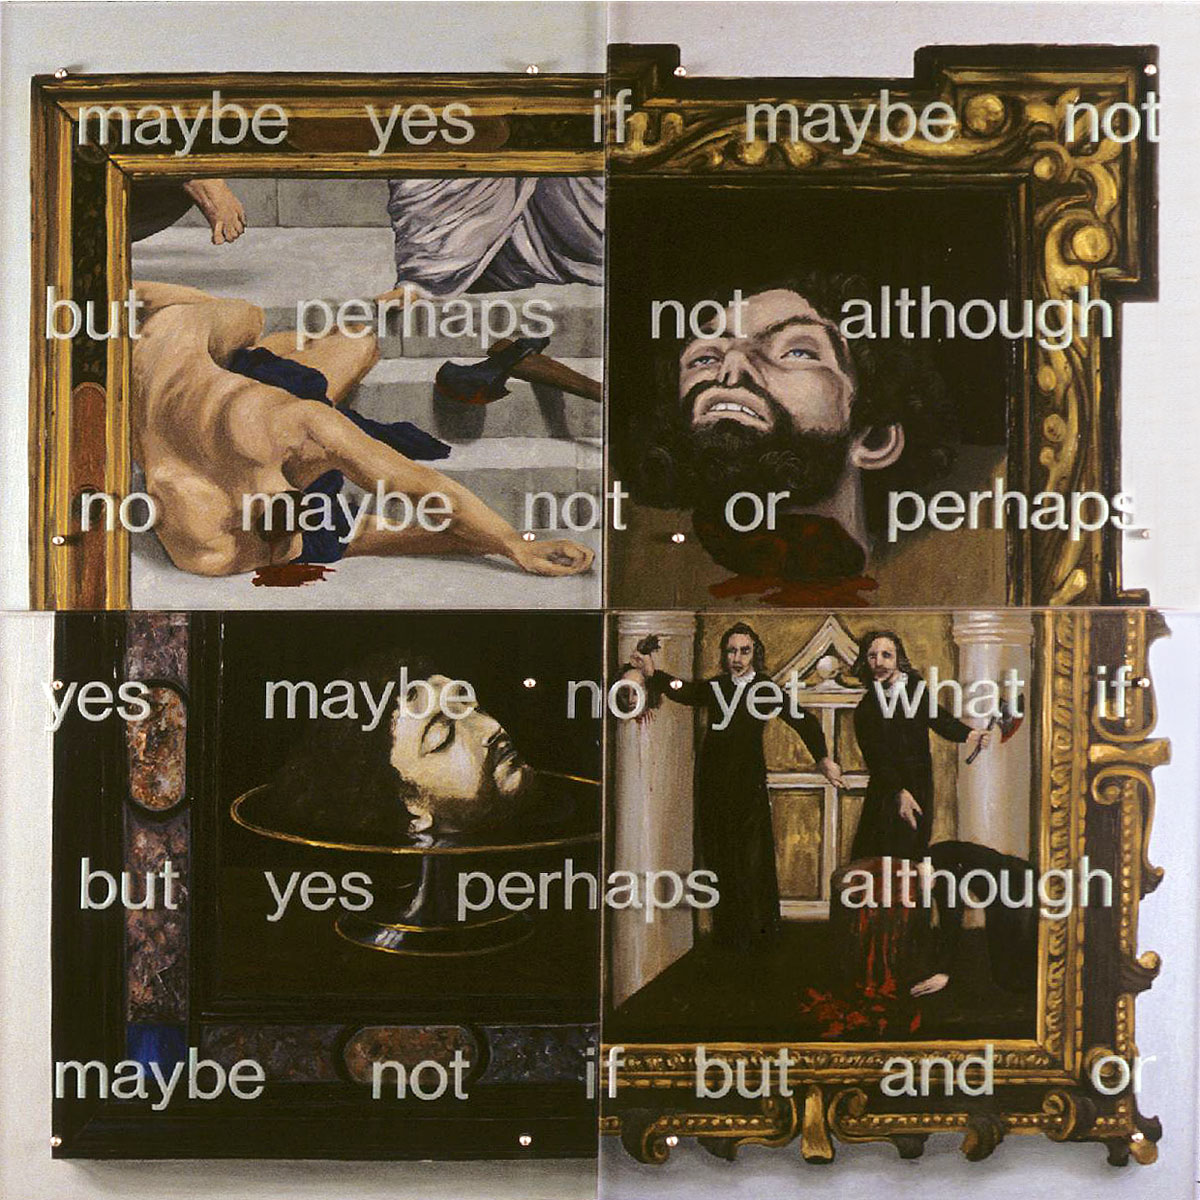 "maybe yes if maybe not, 60"" x 60"" (153cm x 153cm), four panels, oil on wood, sandblasted glass, bolts"